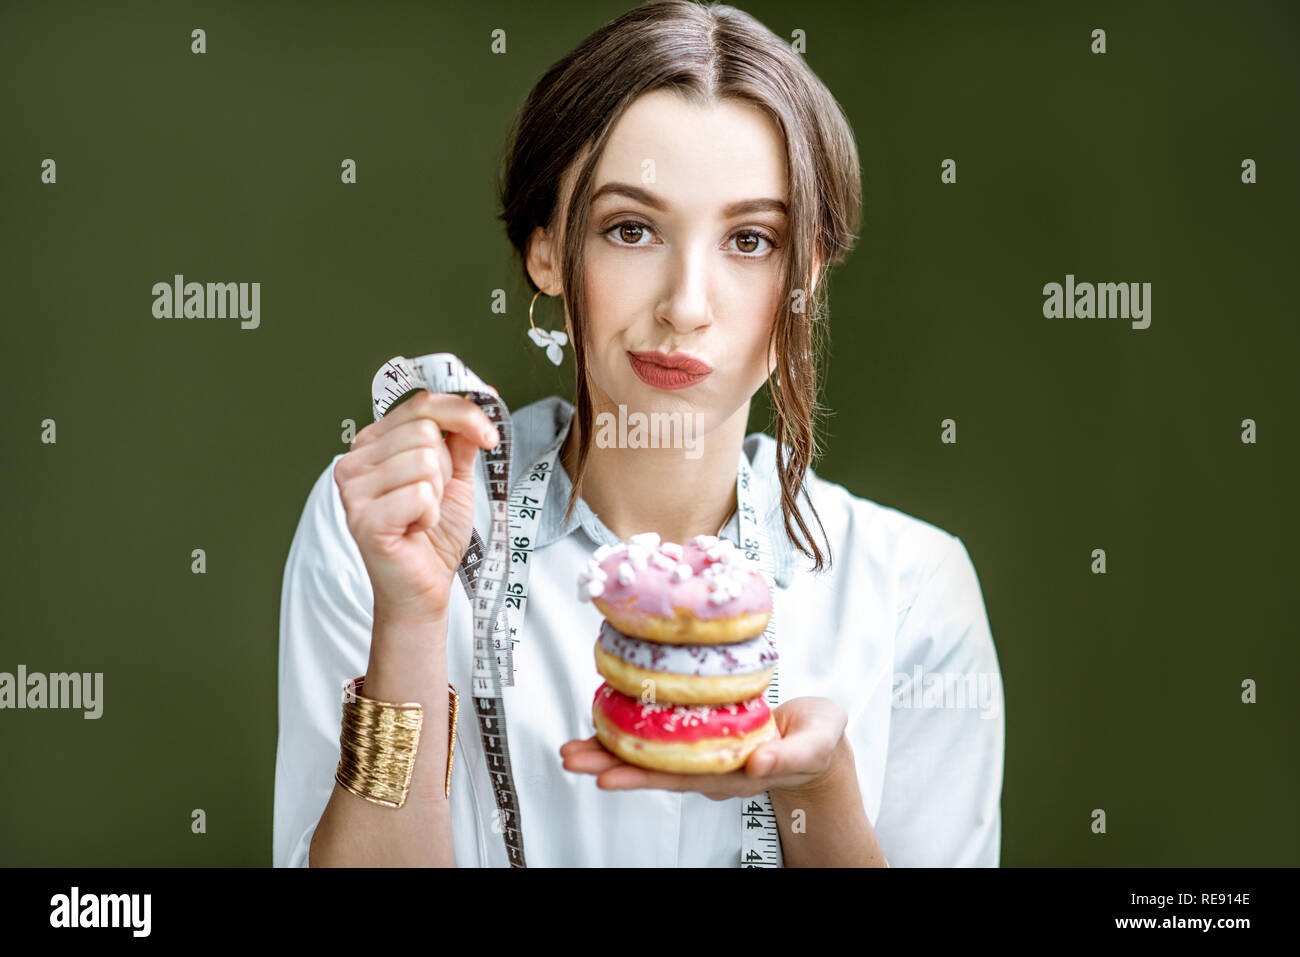 Portrait of a sad woman nutritionist in medical gown with donuts and tape measure on the green background. Unhealthy eating and adiposity concept - Stock Image